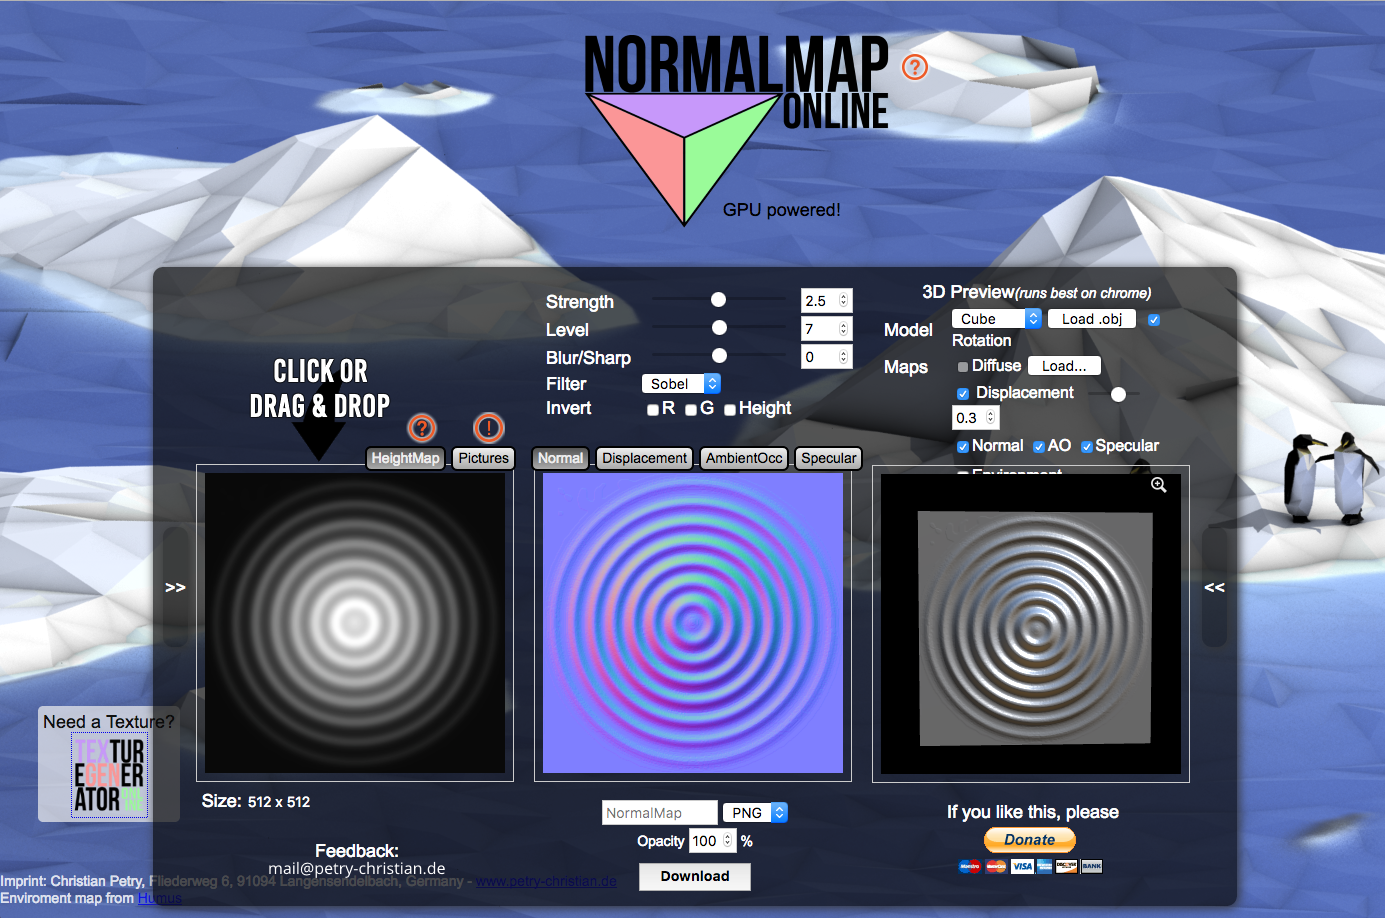 FREE ONLINE RESOURCE FOR CREATING NORMAL, SPECULAR, AO